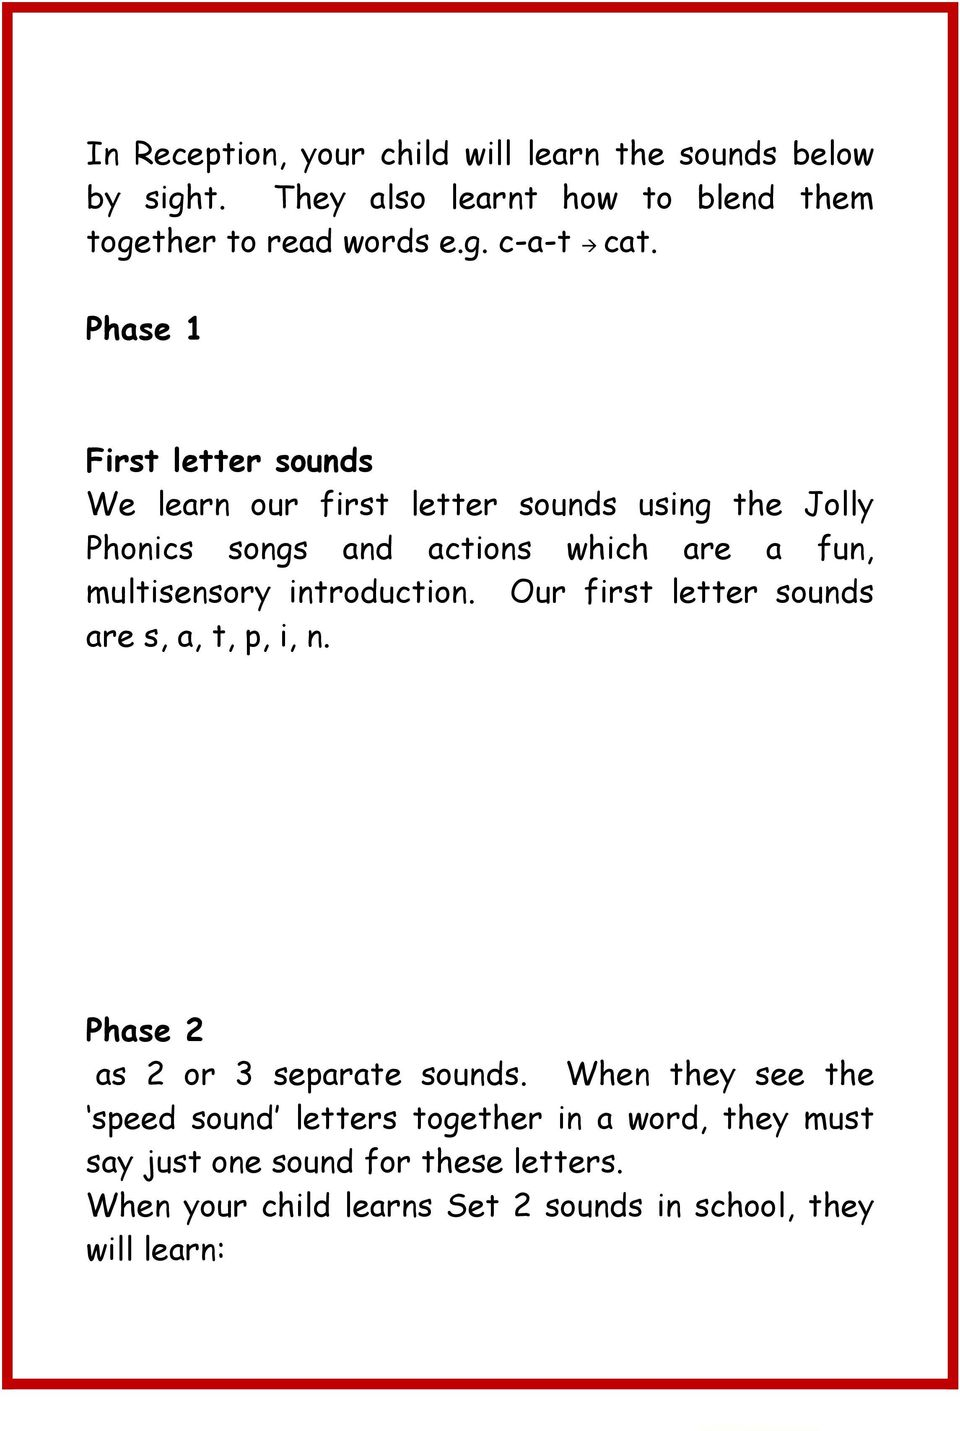 introduction. Our first letter sounds are s, a, t, p, i, n. Phase 2 as 2 or 3 separate sounds.